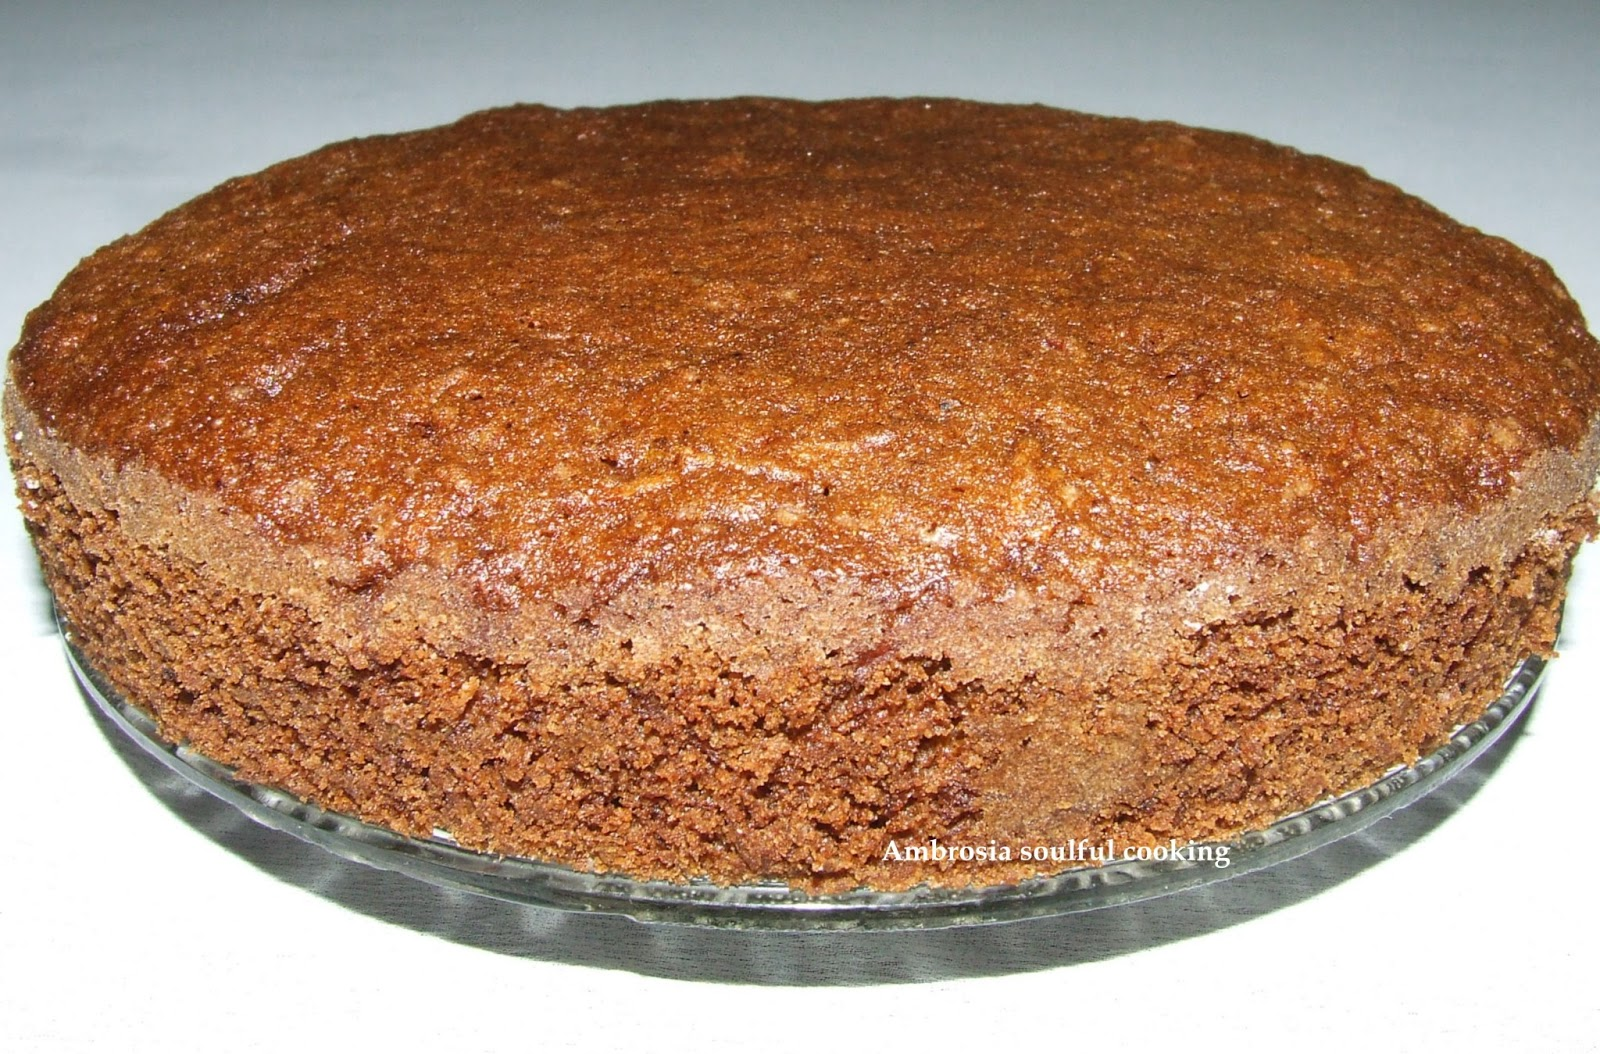 AMBROSIA: WHOLE WHEAT CARROT CAKE